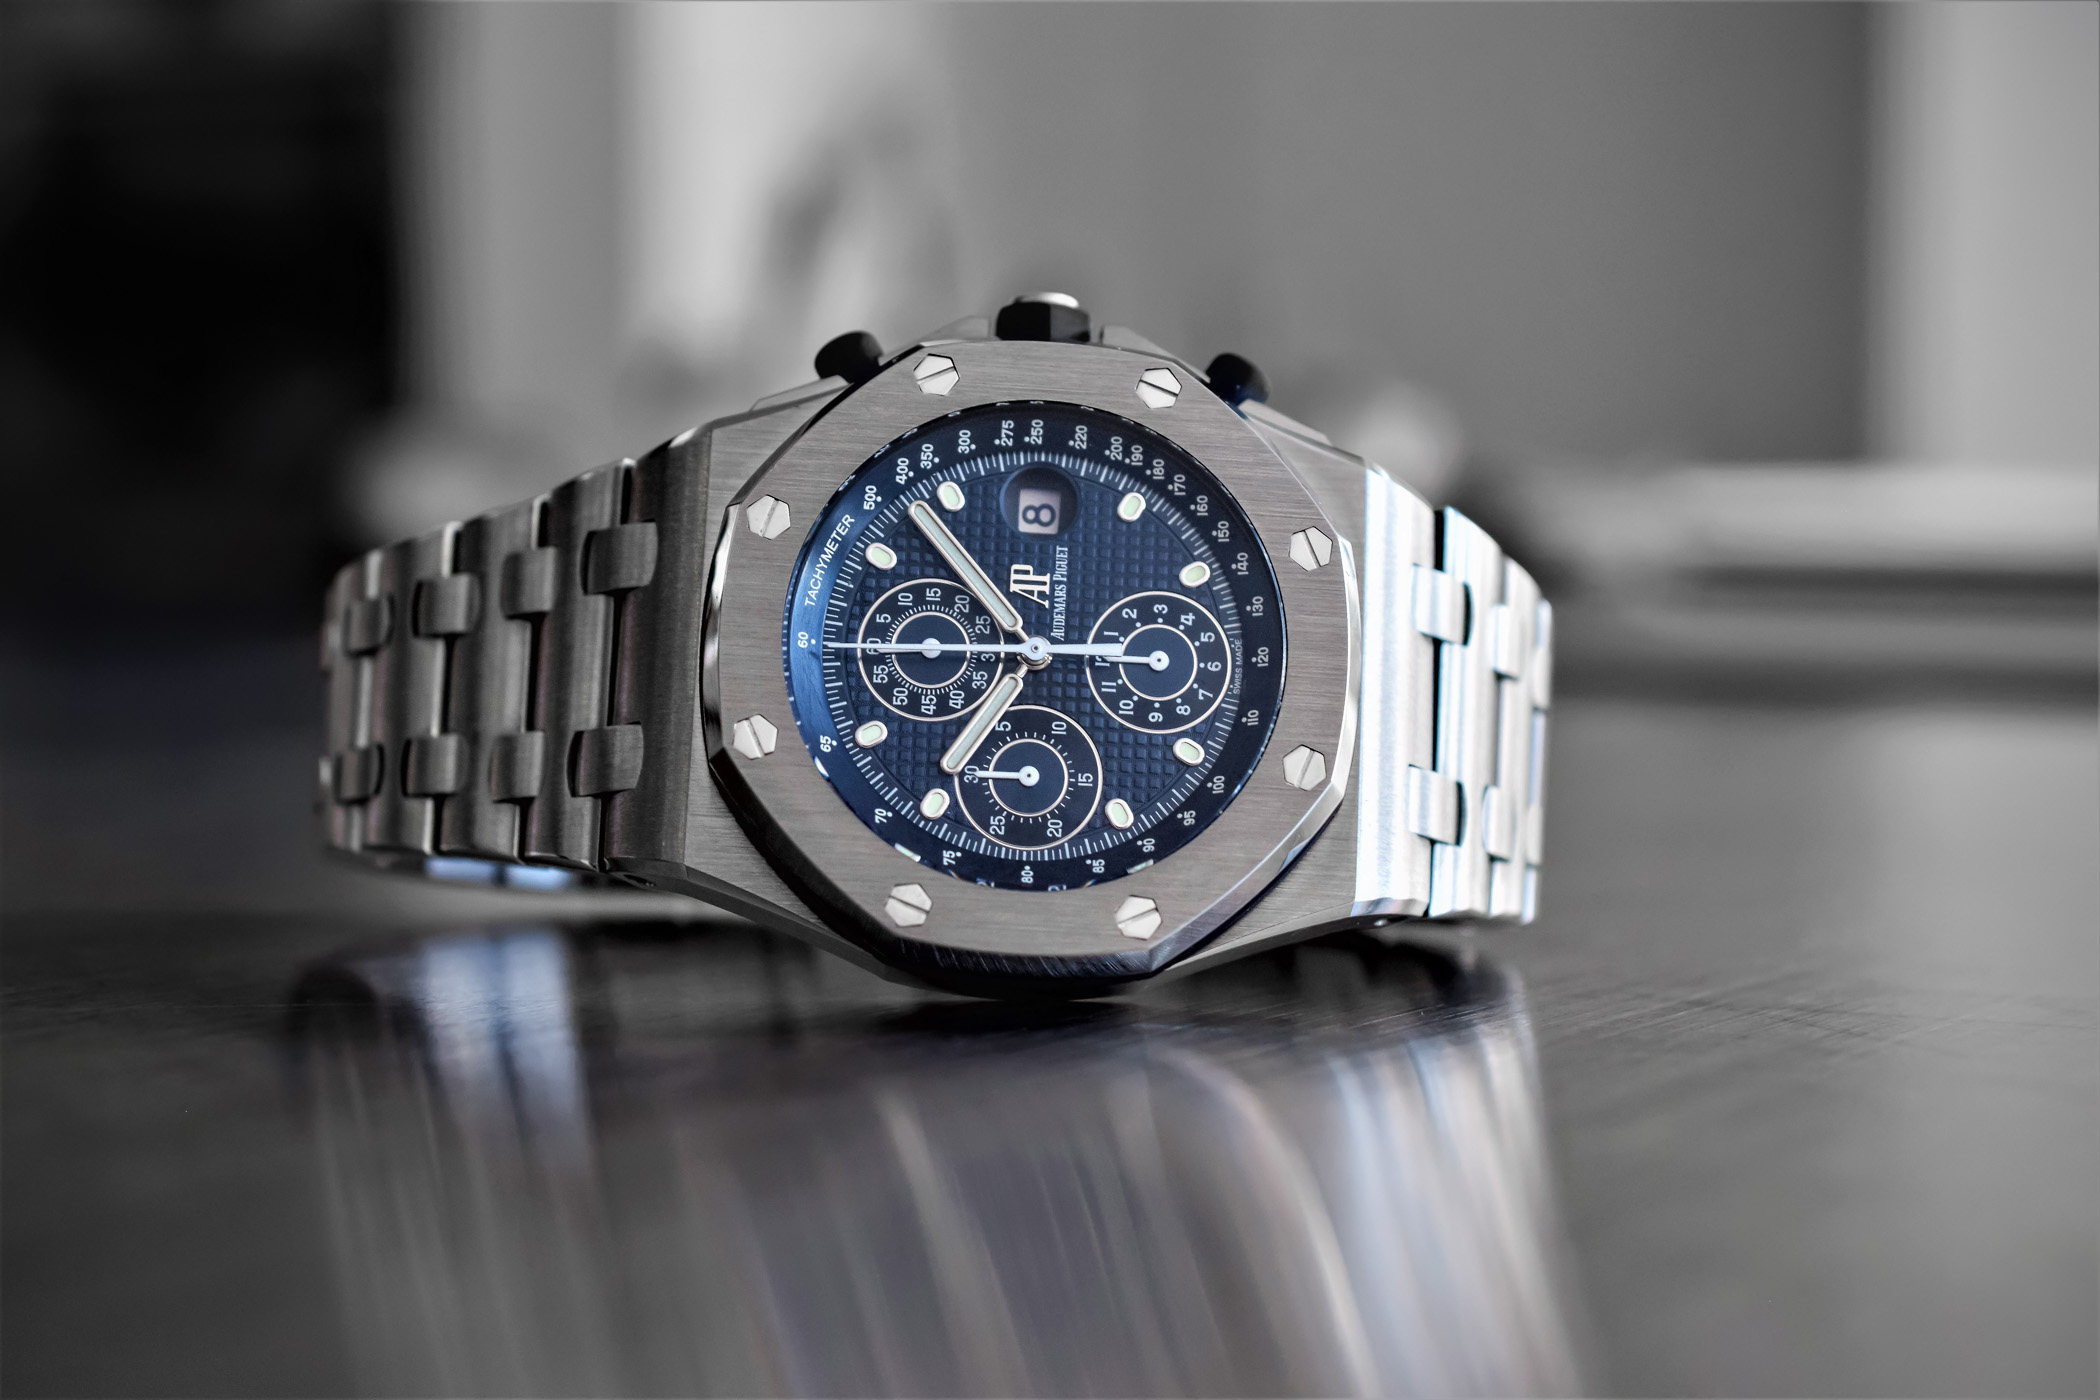 b96ae46a463 Audemars Piguet Reissues the 1993 Royal Oak Offshore Chronograph… And We Go  Hands-On With This 25th Anniversary Ref. 26237ST